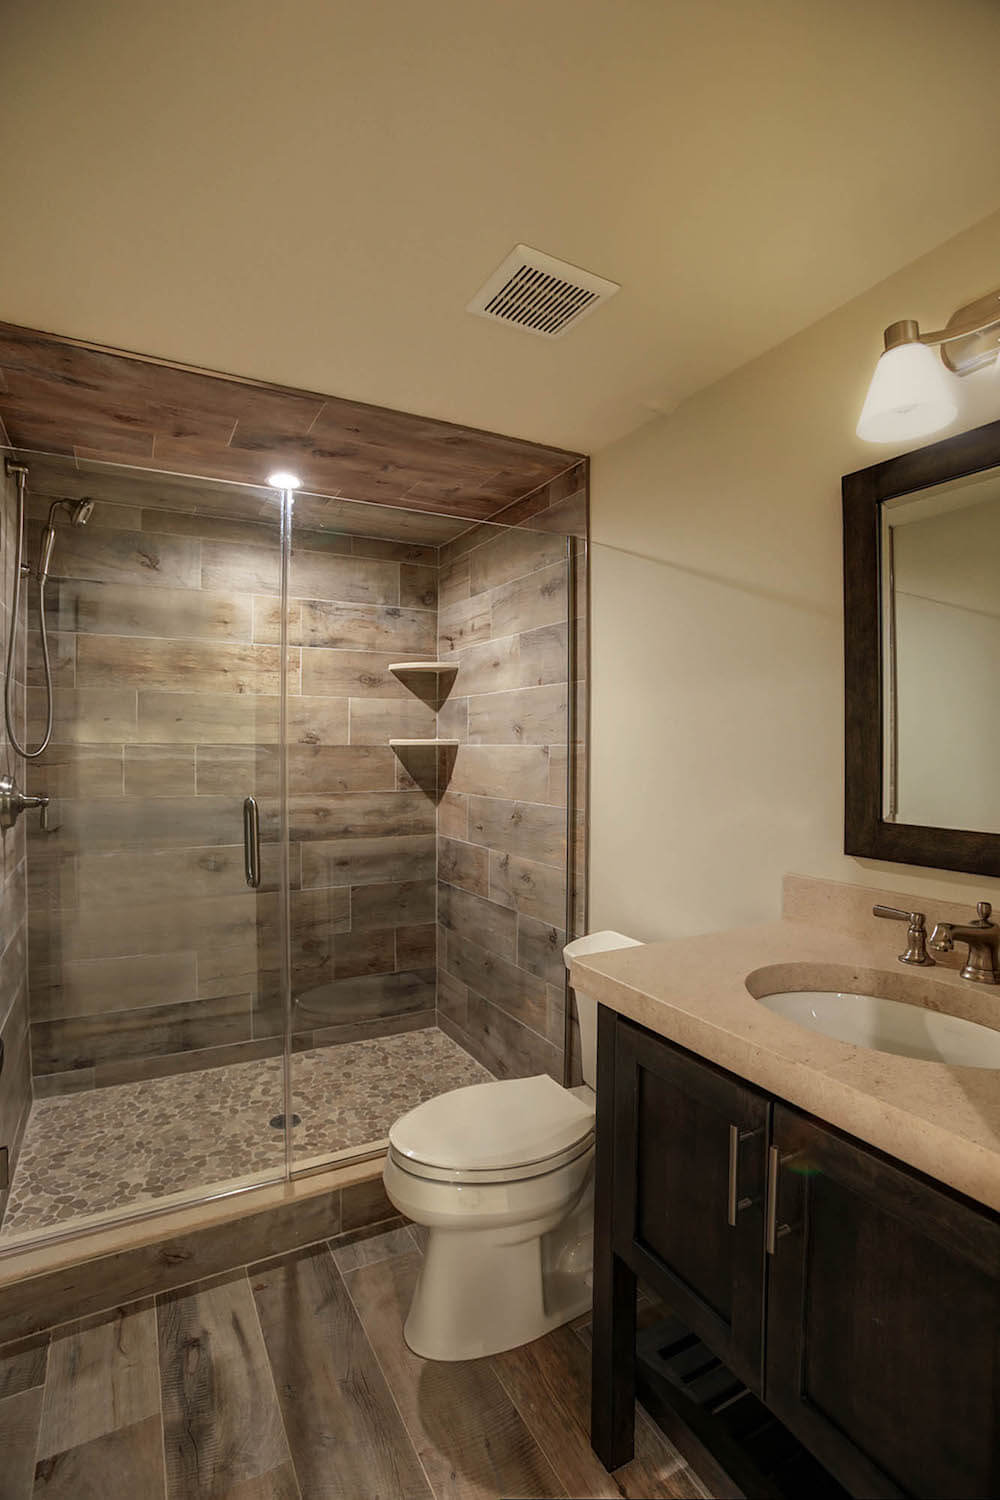 Basement Remodeling Costs Basement Finishing Cost - Basement bathroom installation cost for bathroom decor ideas